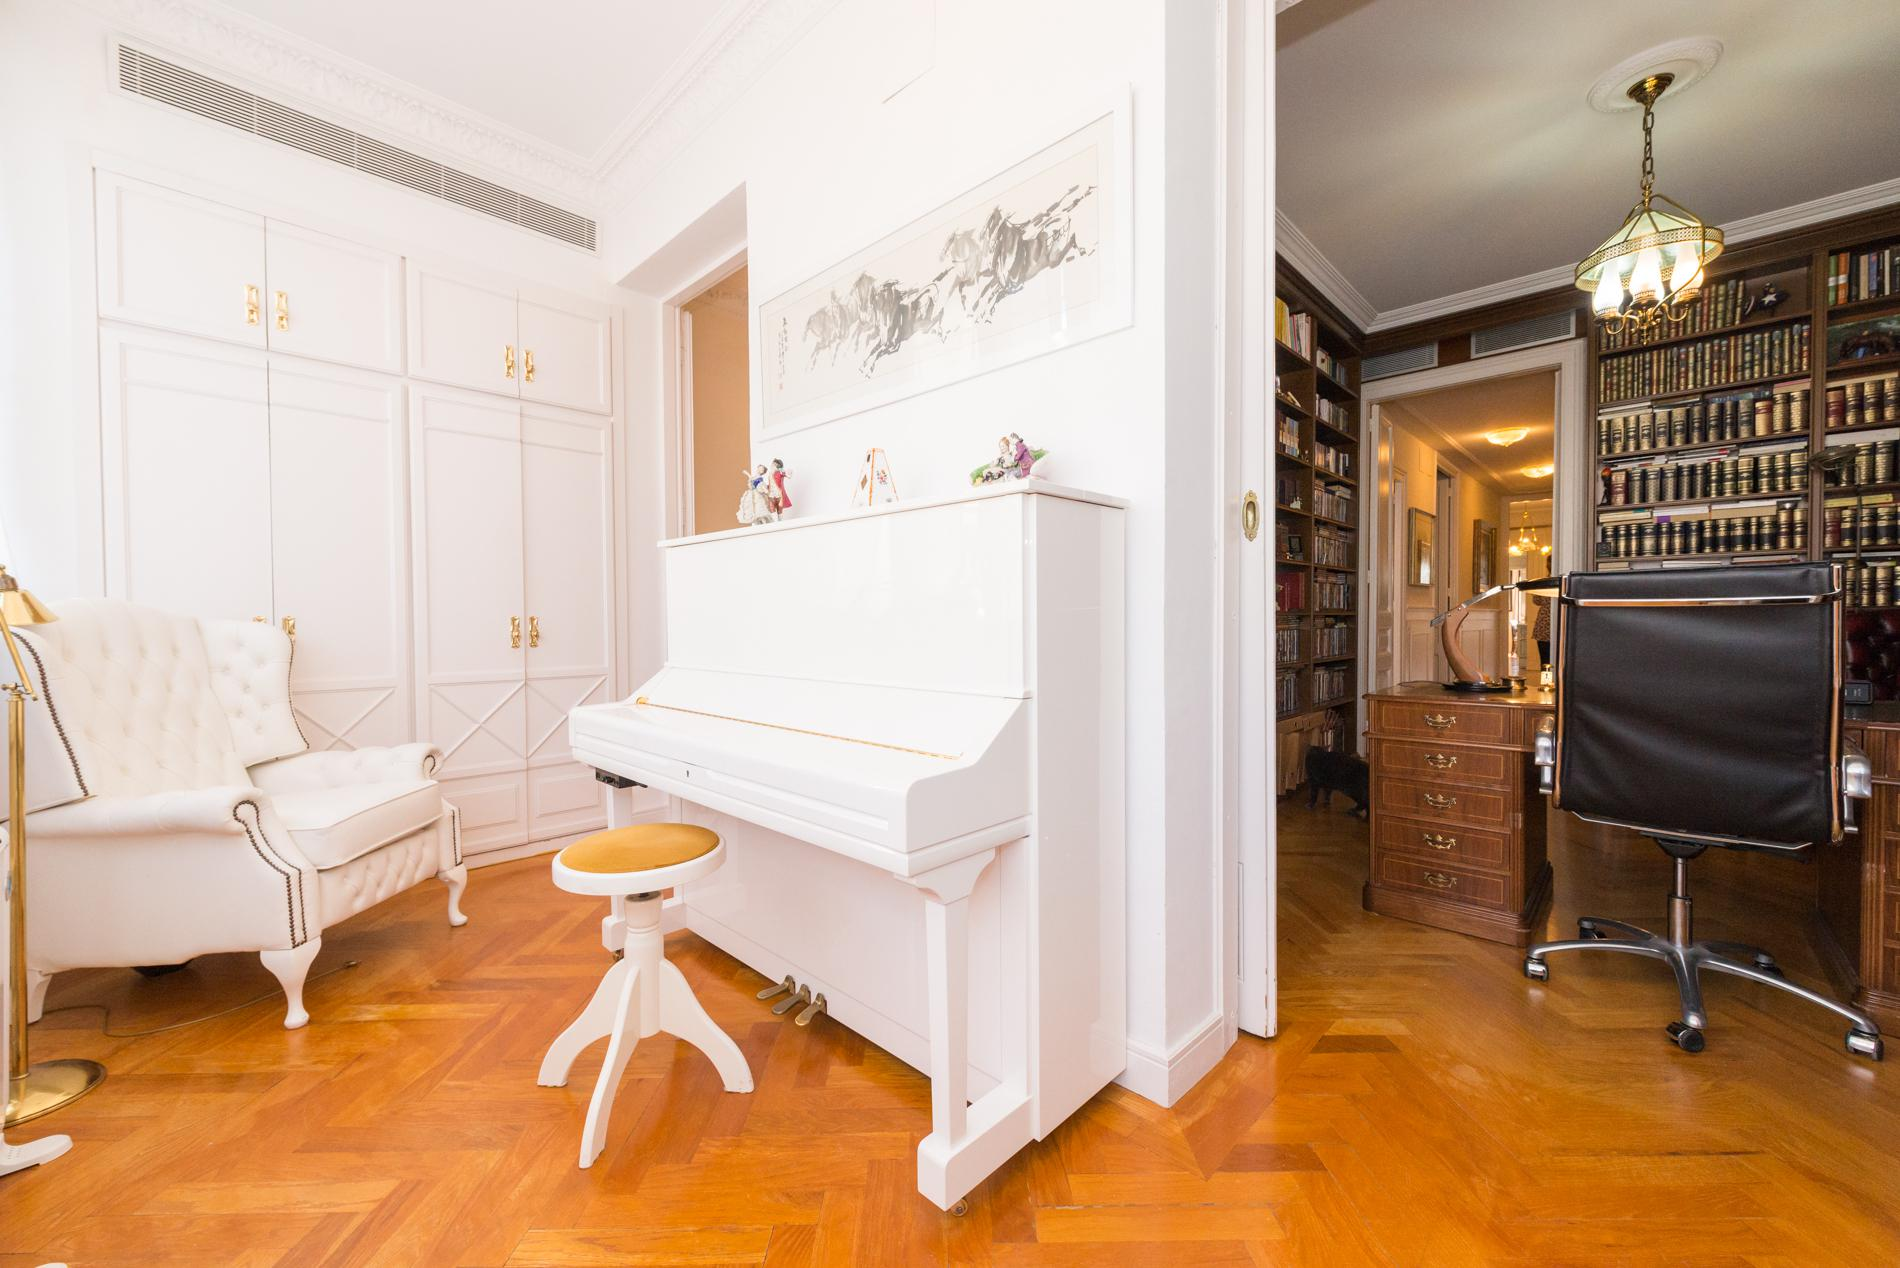 174066 Apartment for sale in Eixample, Old Left Eixample 11